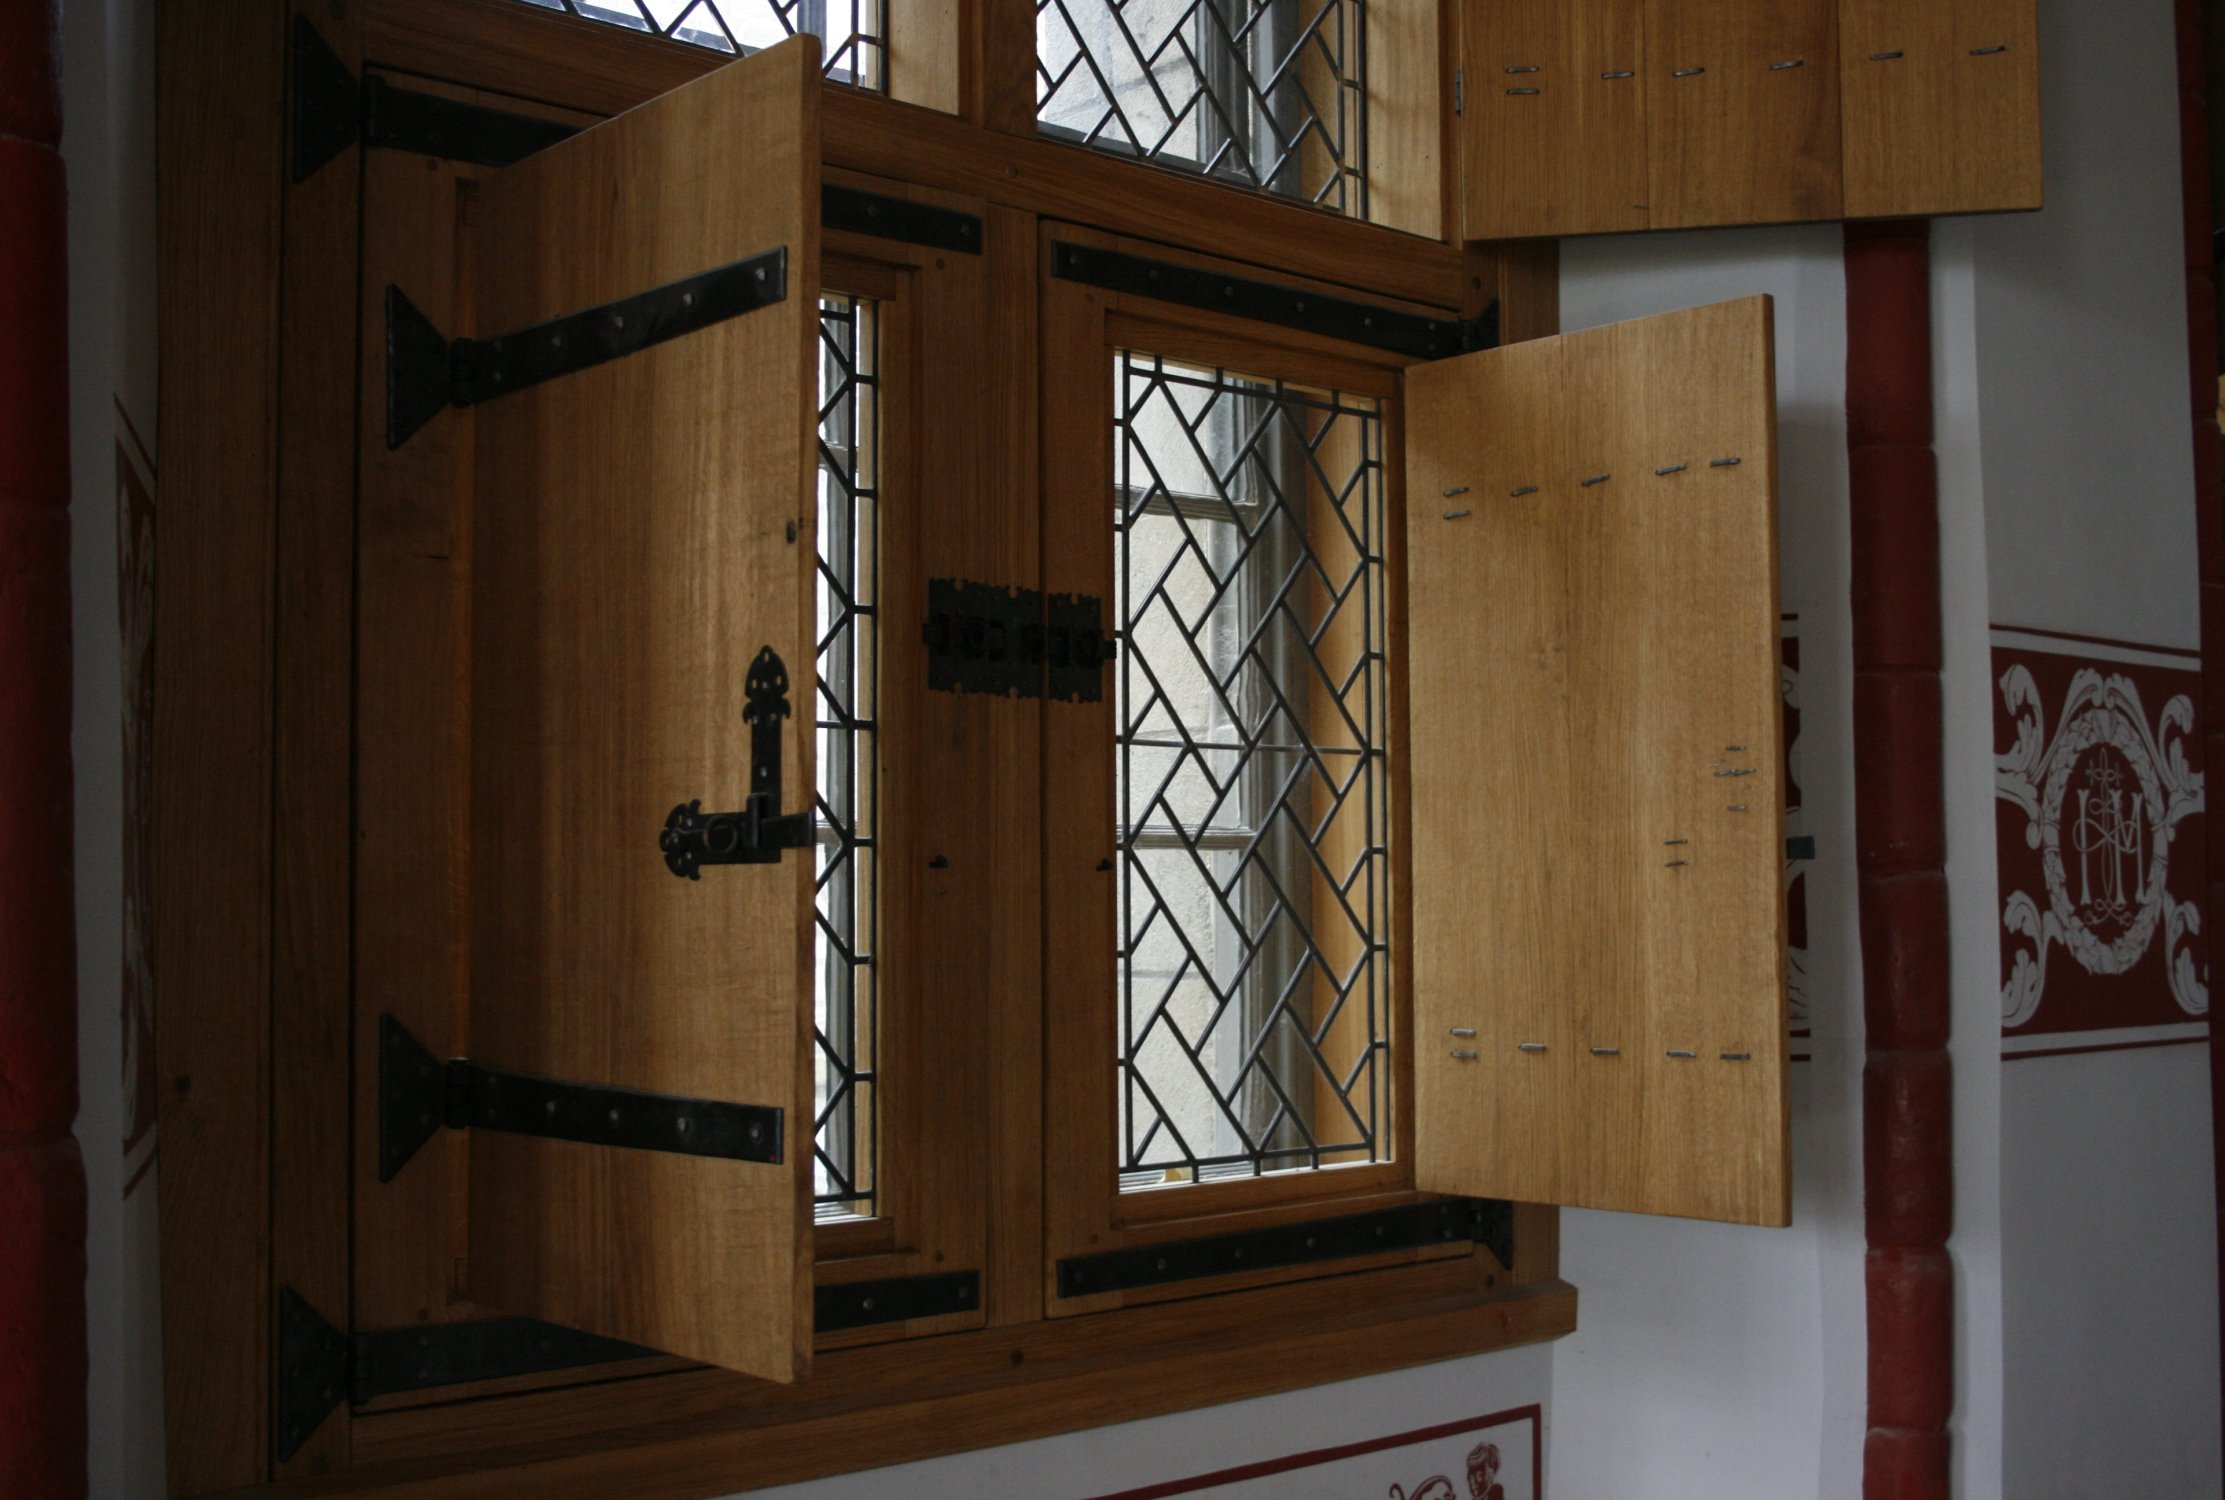 Solid oak shutters in the Renaissance Palace